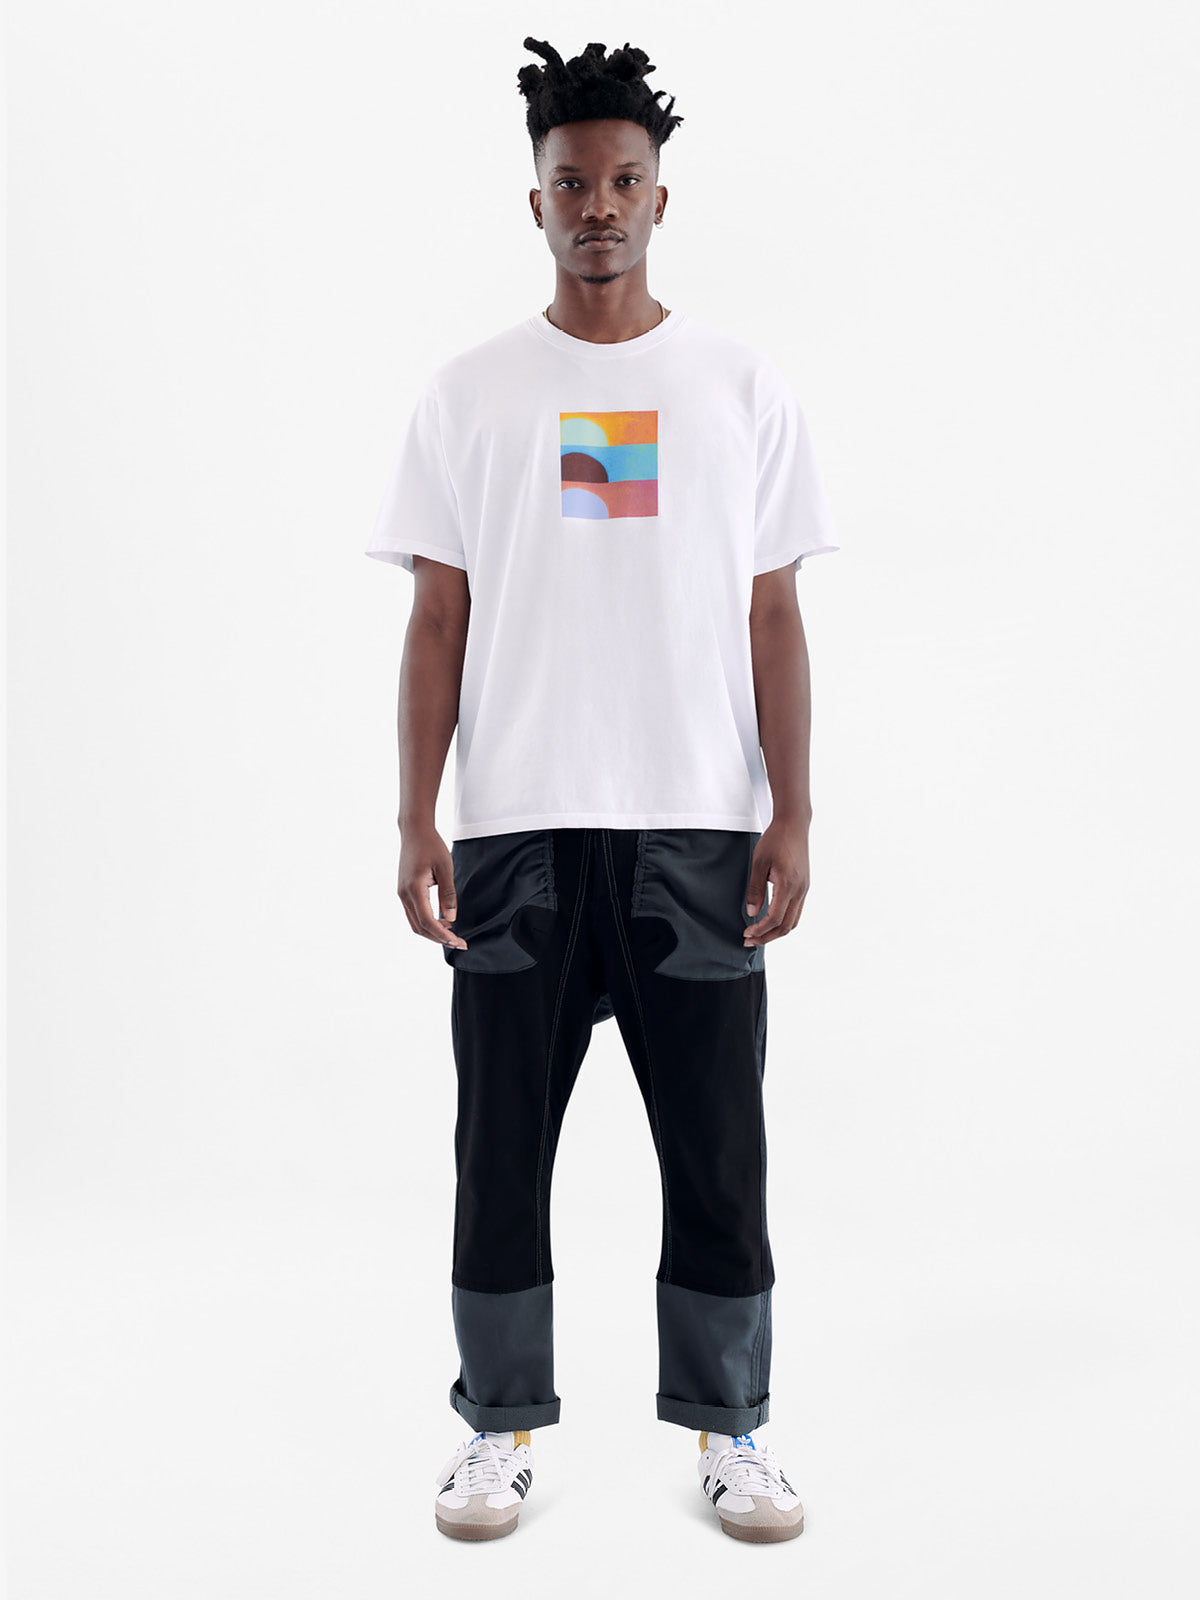 Model wearing white short sleeve cotton t-shirt with square multicolor abstract sunset graphic on chest